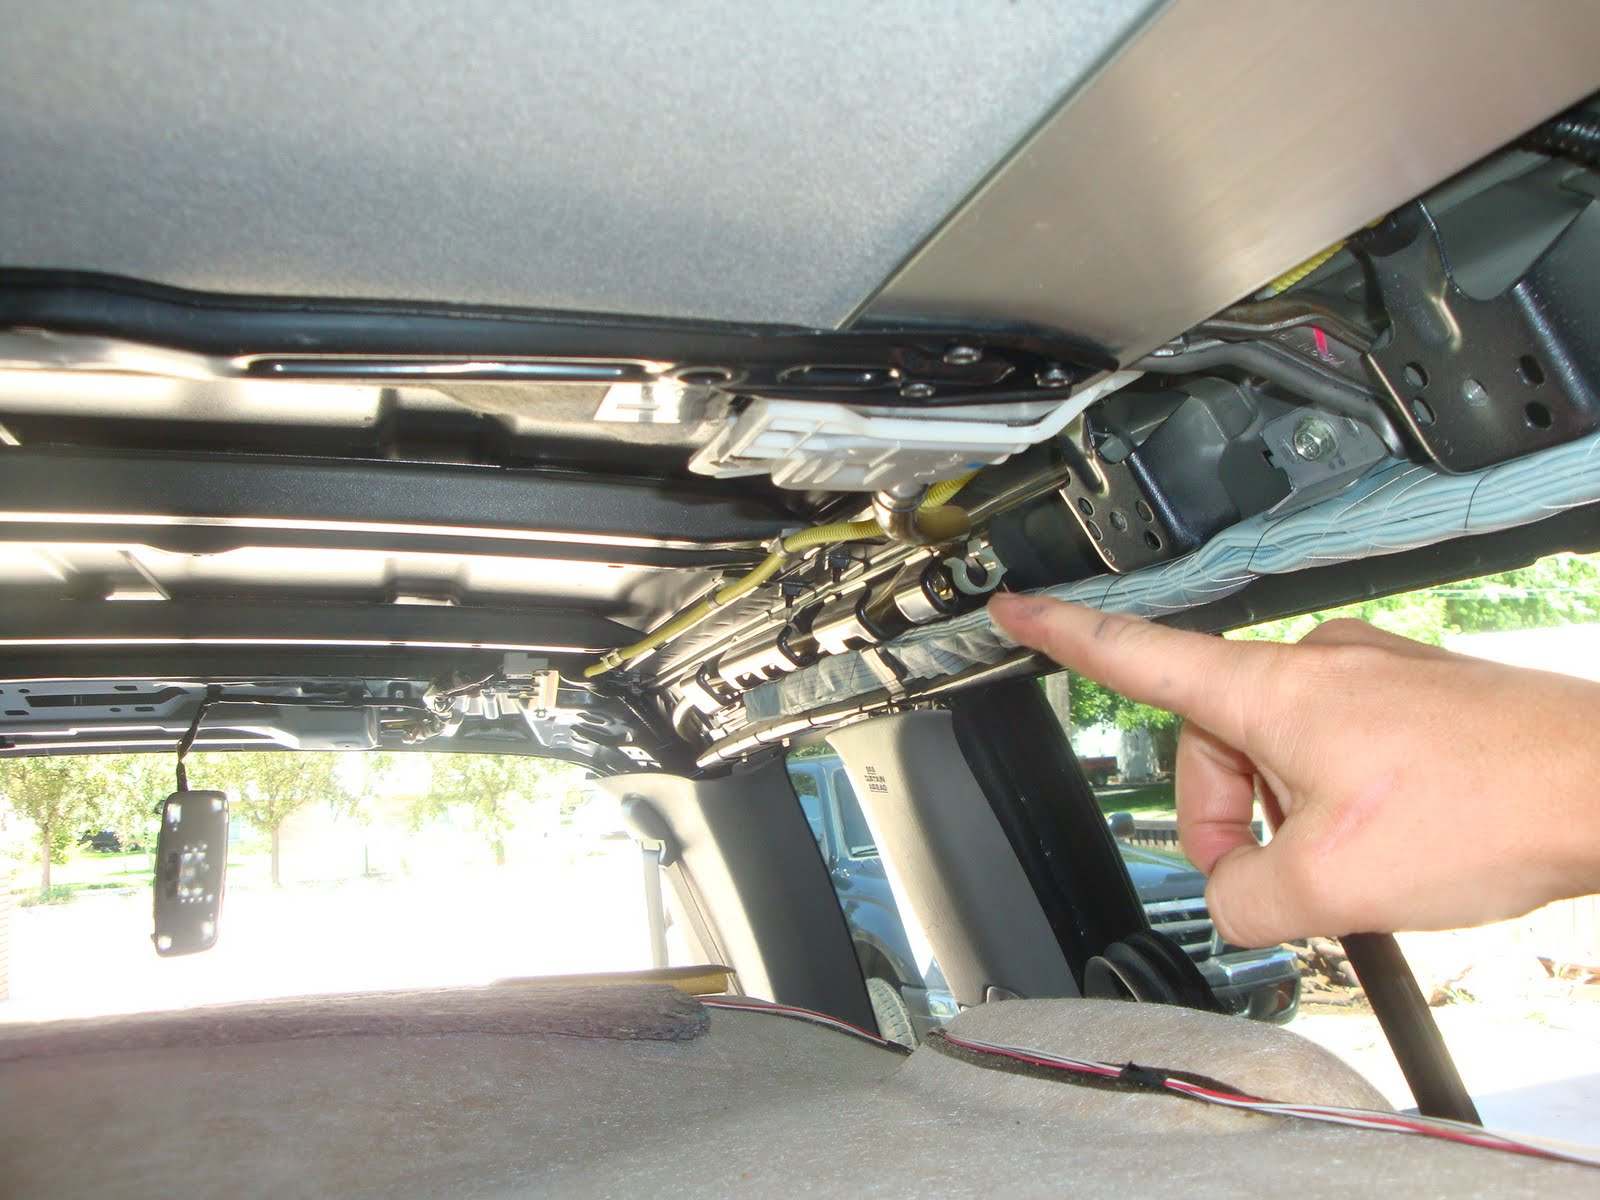 Cheap Fix Pics On Removing A Sunroof For A 2004 Highlander To Rh  Cheapfix101 Blogspot Com 2004 Highlander Limited 2004 Highlander Limited